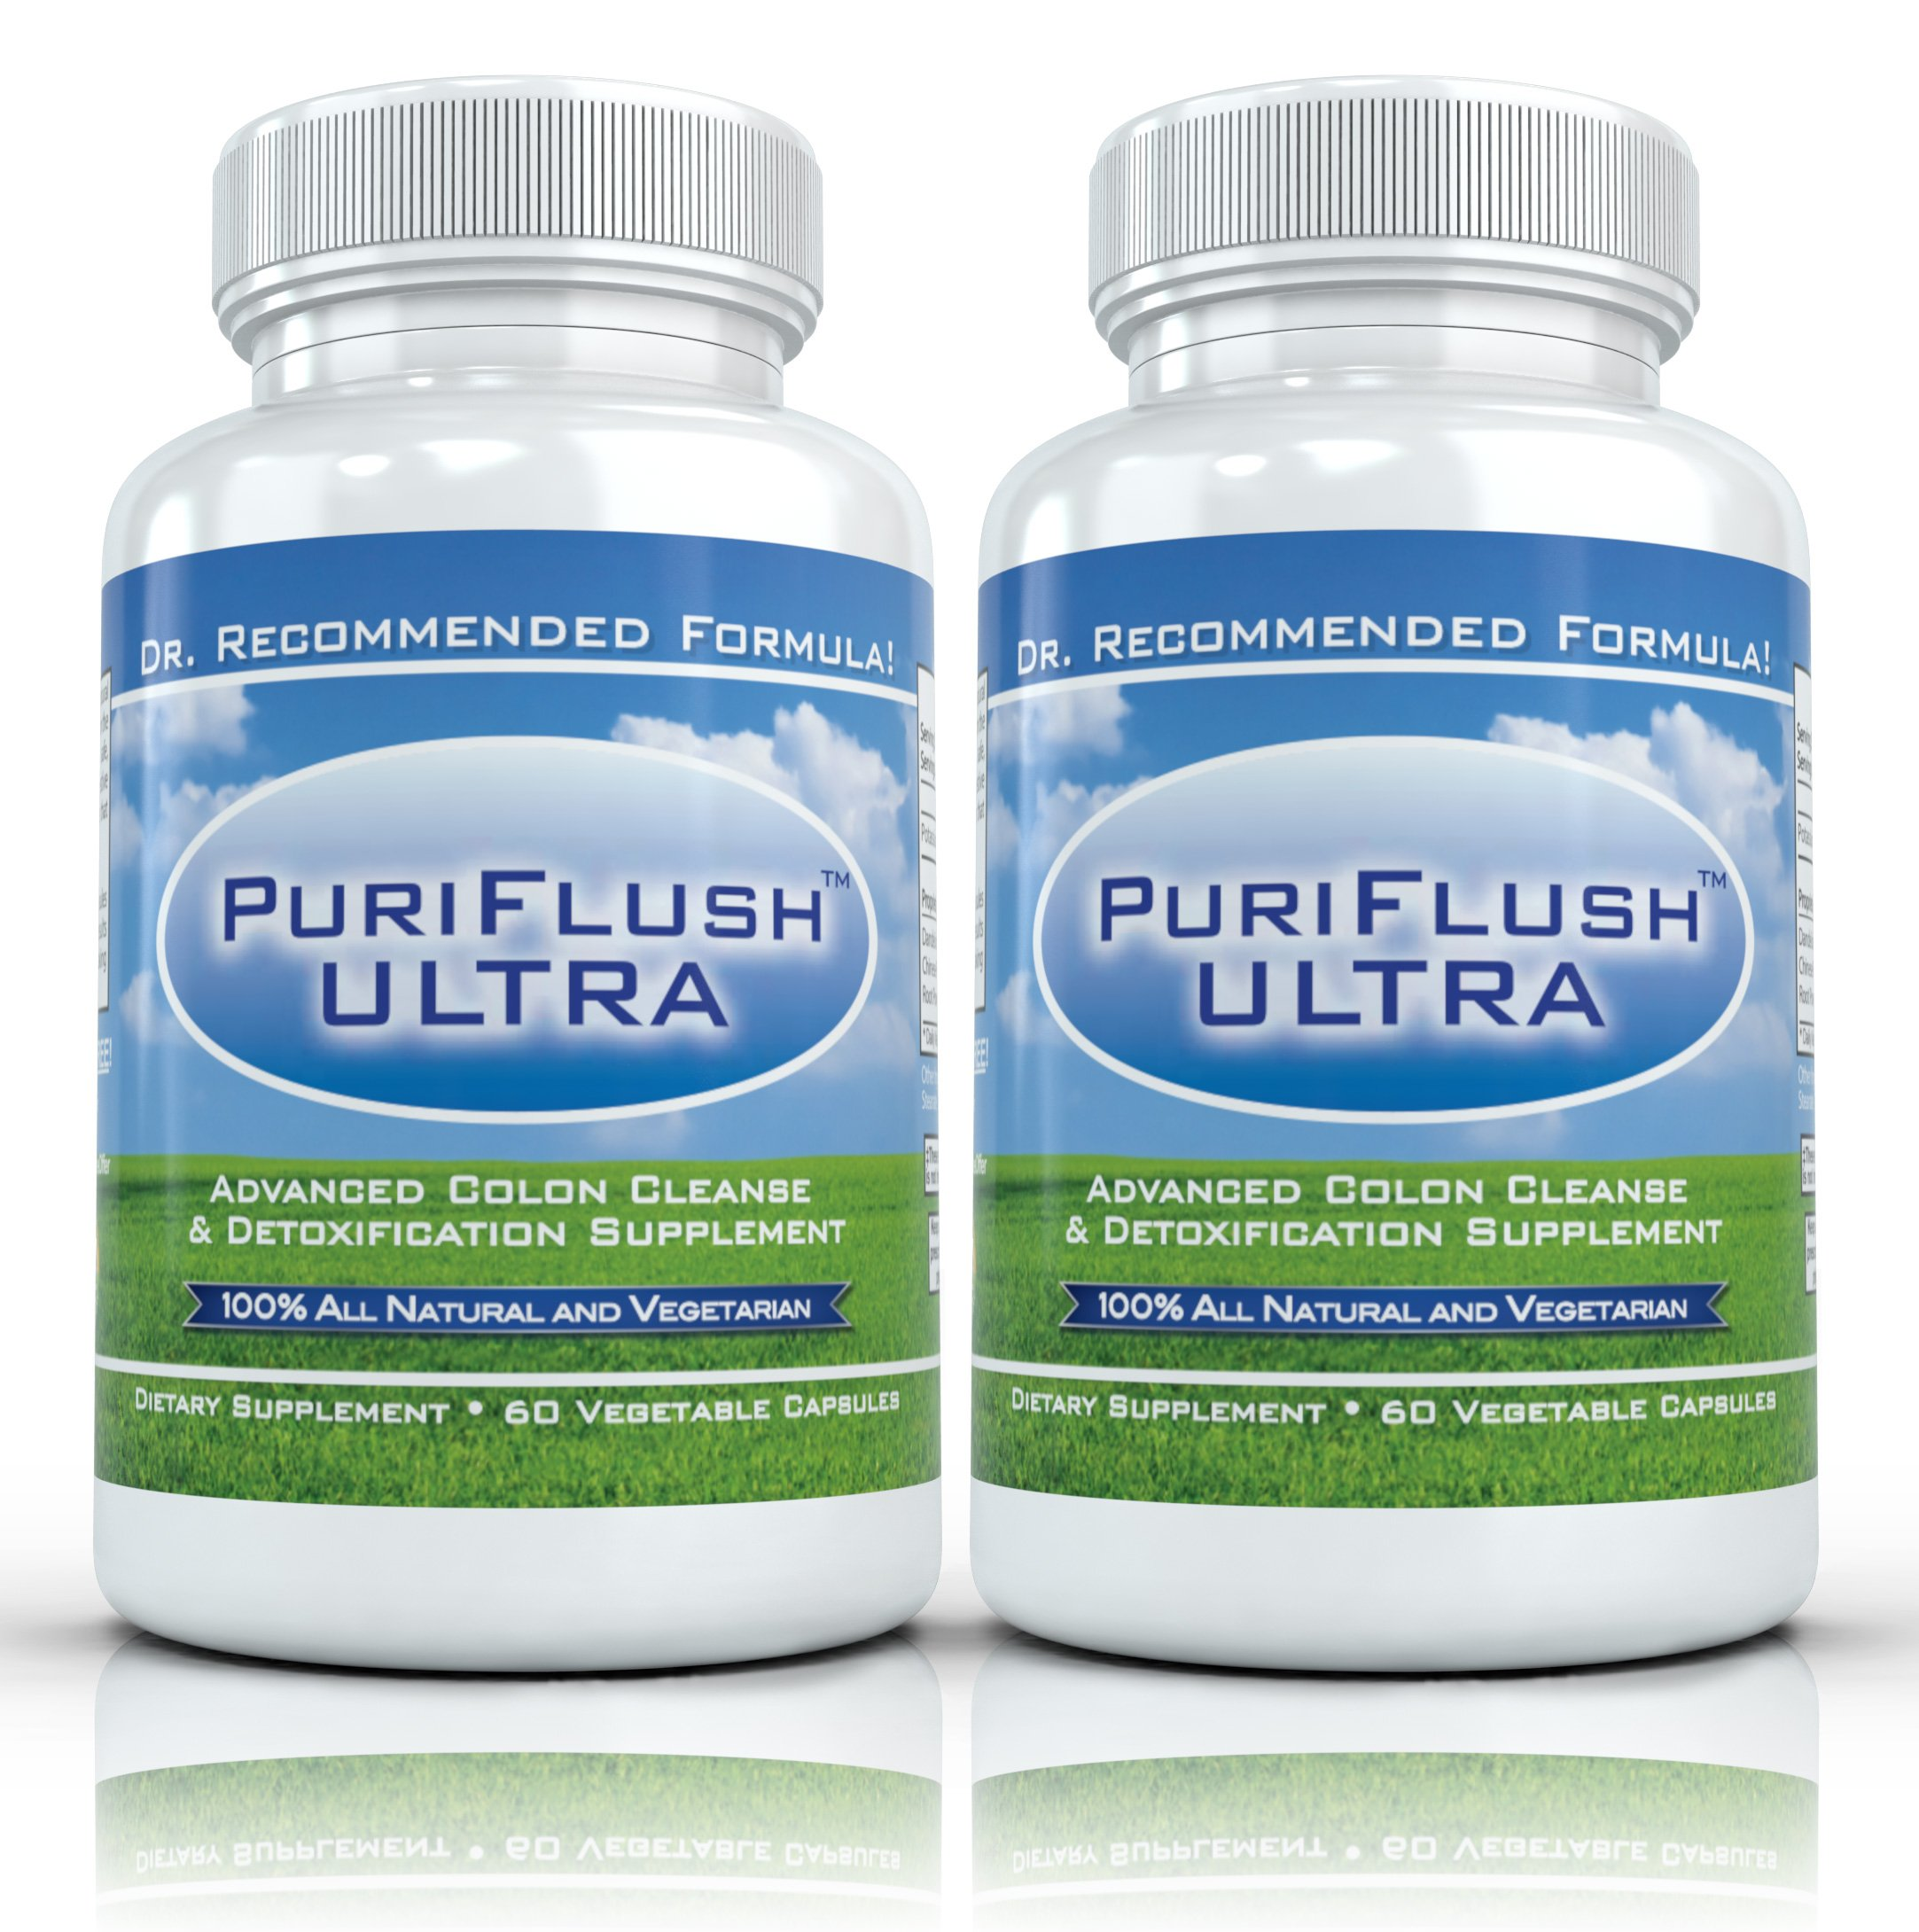 PURIFLUSH ULTRA (2 Bottles) - Professional Strength All-Natural Colon Cleanse Supplement (60 Capsules per Bottle)